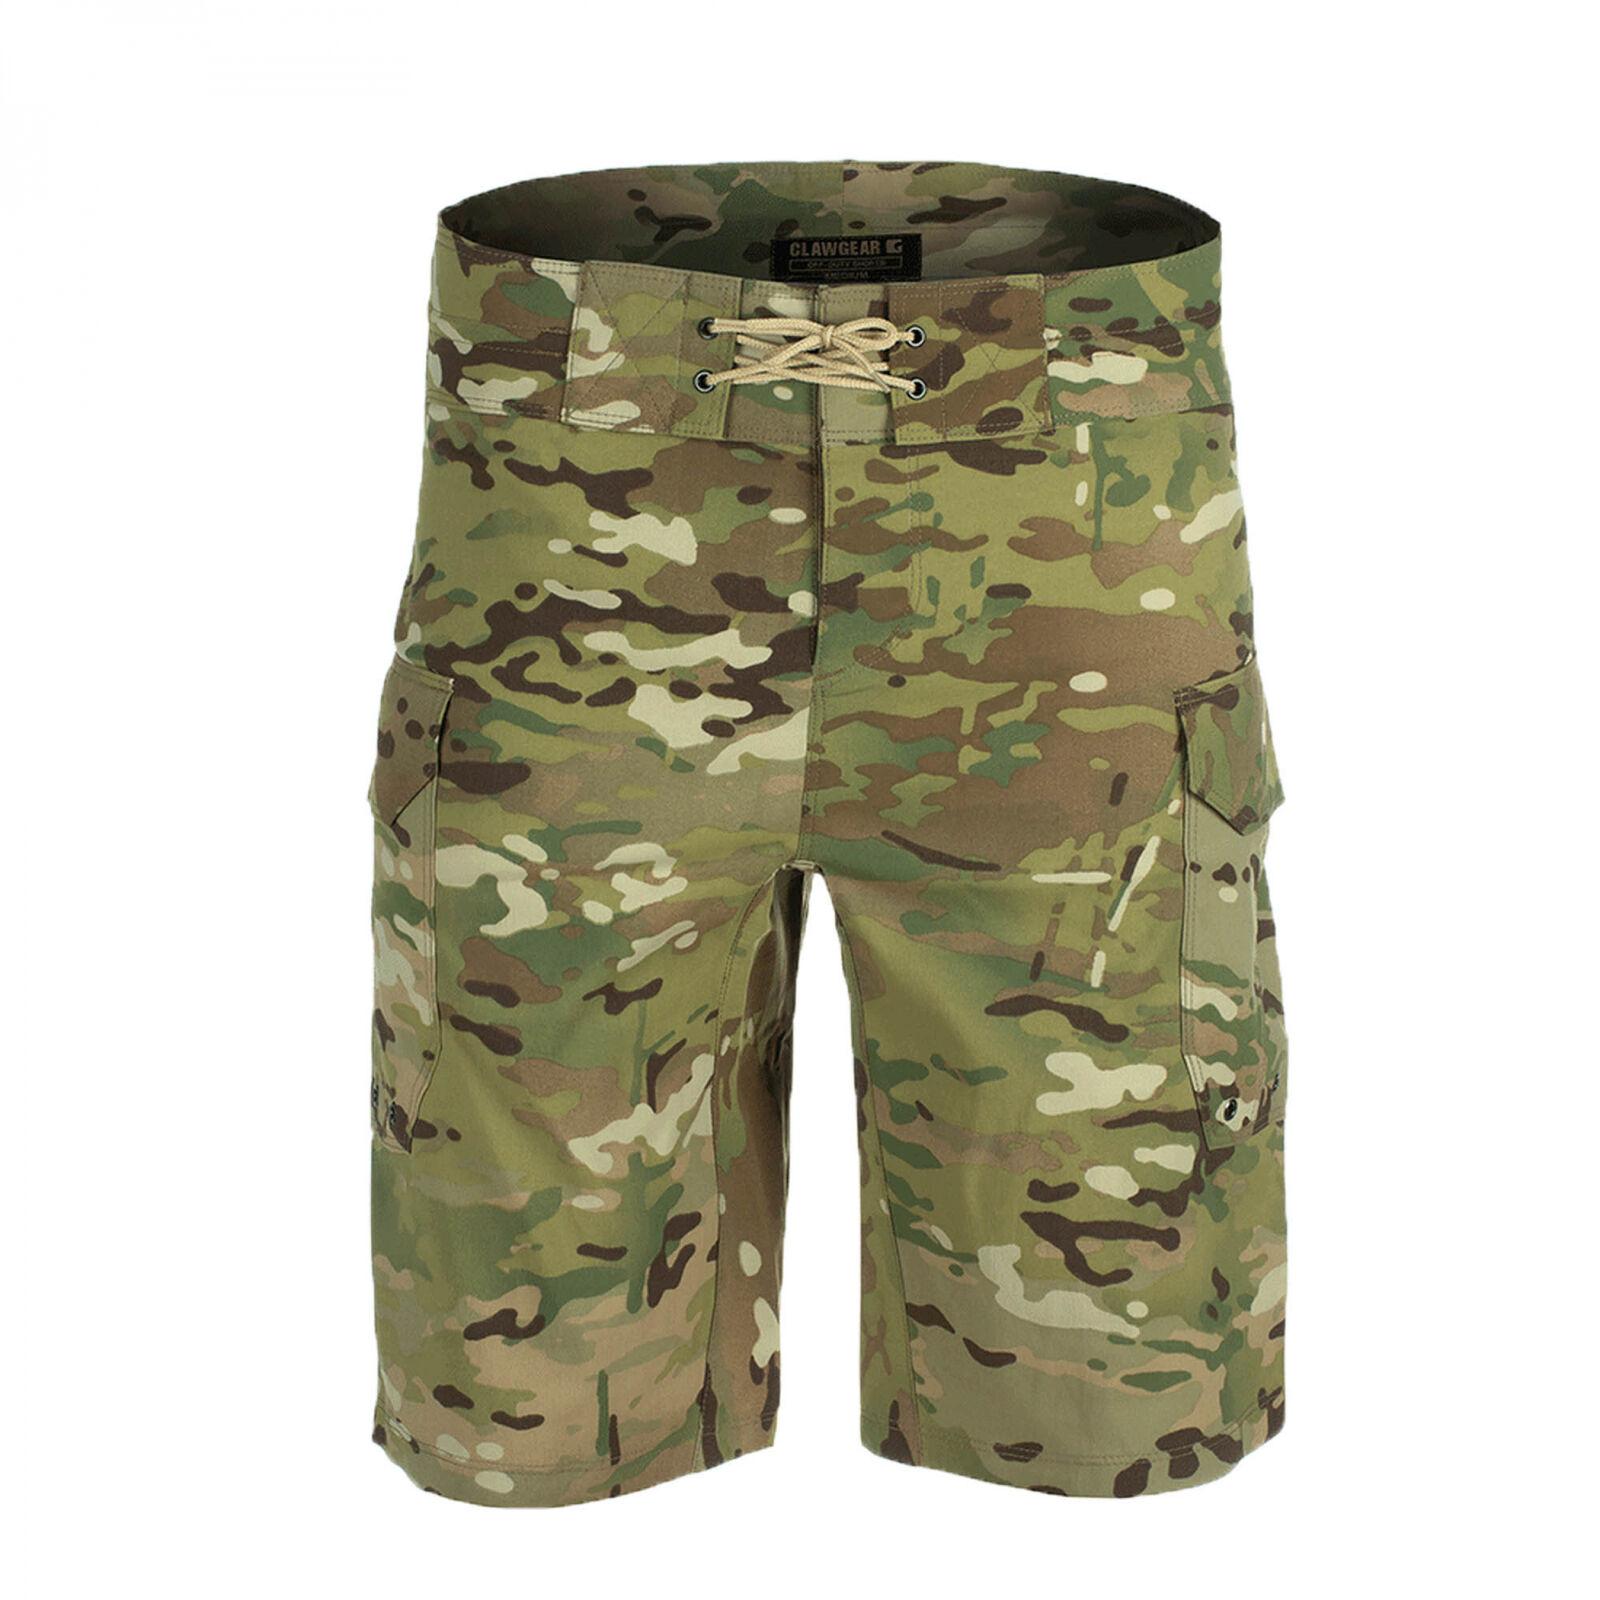 Clawgear offduty tacticool Shorts Costume MULTICAM, Limited Edition